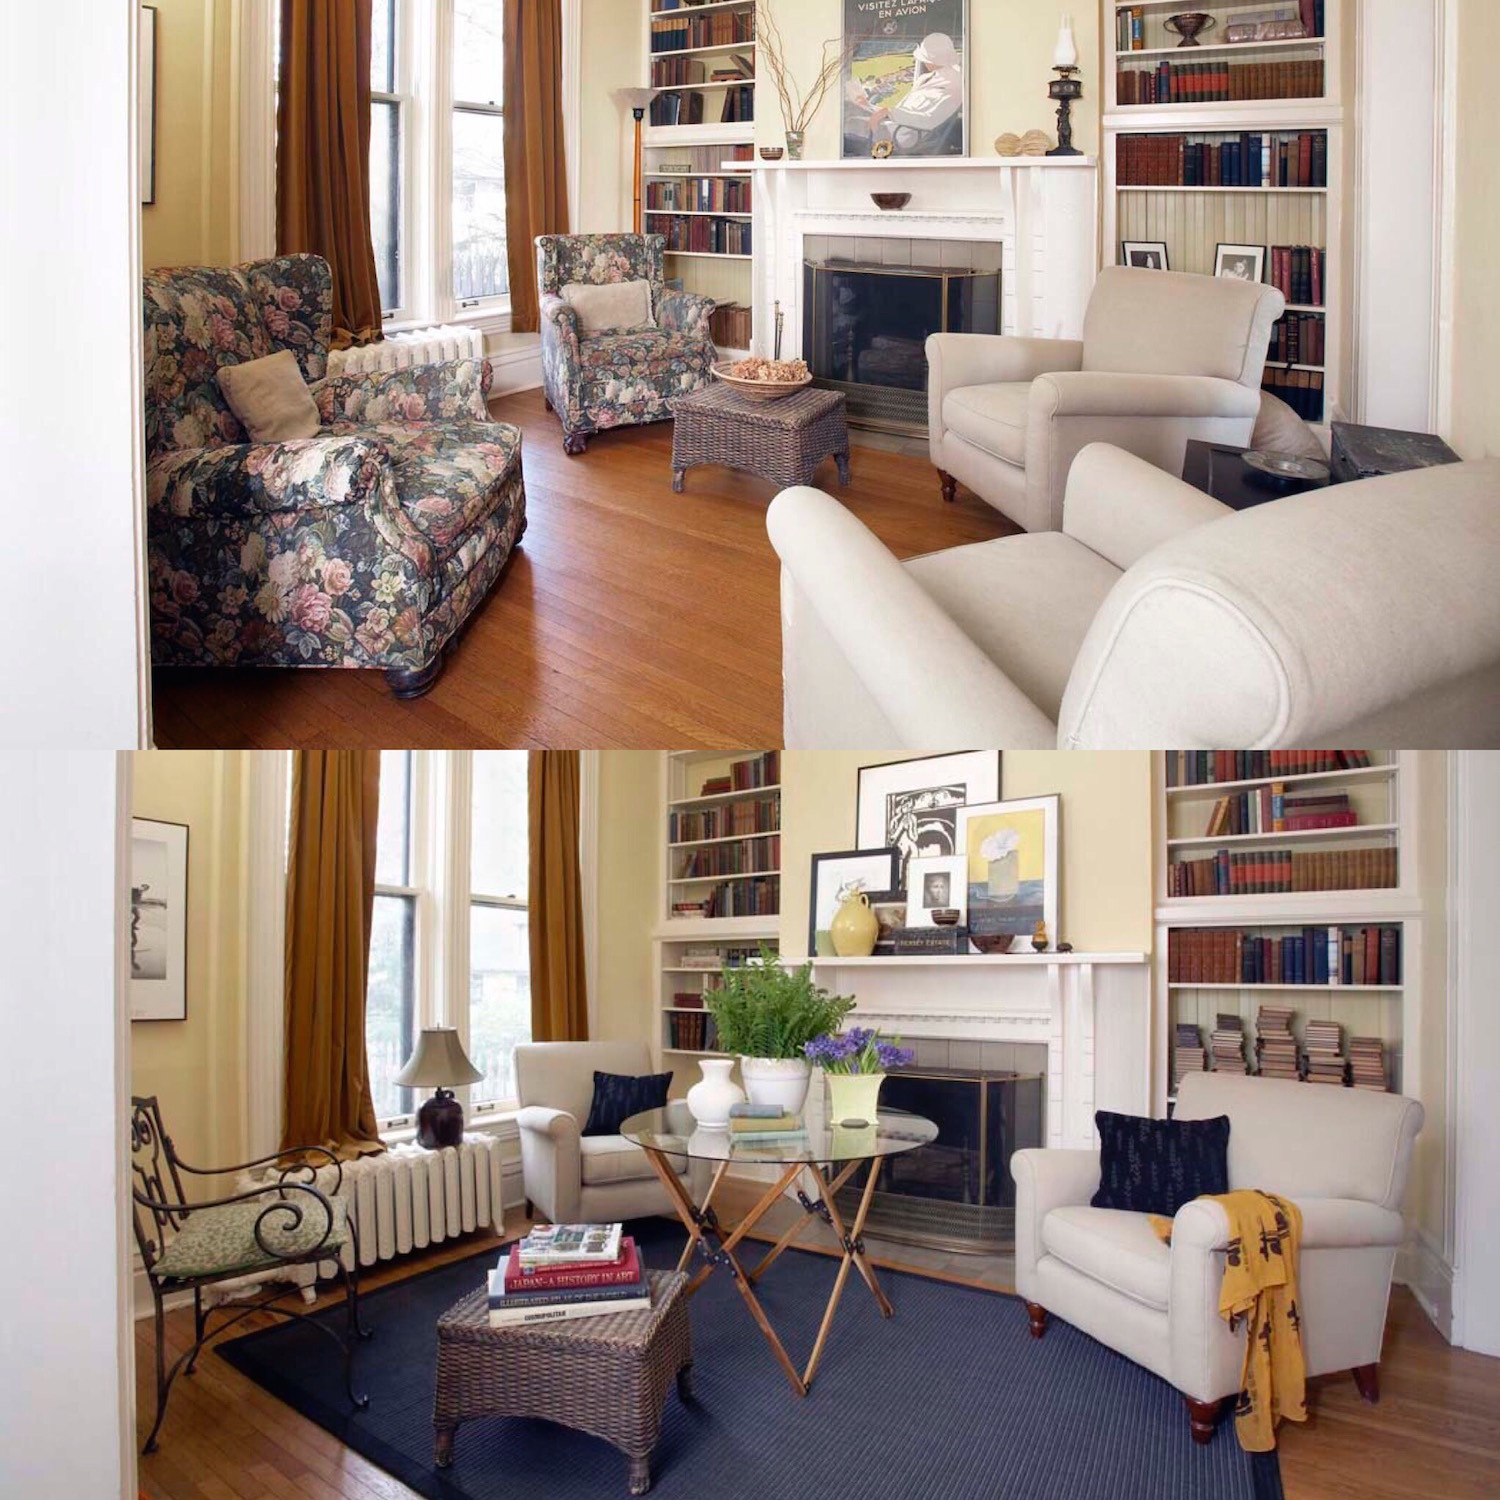 Before and After Flower chairs.jpg